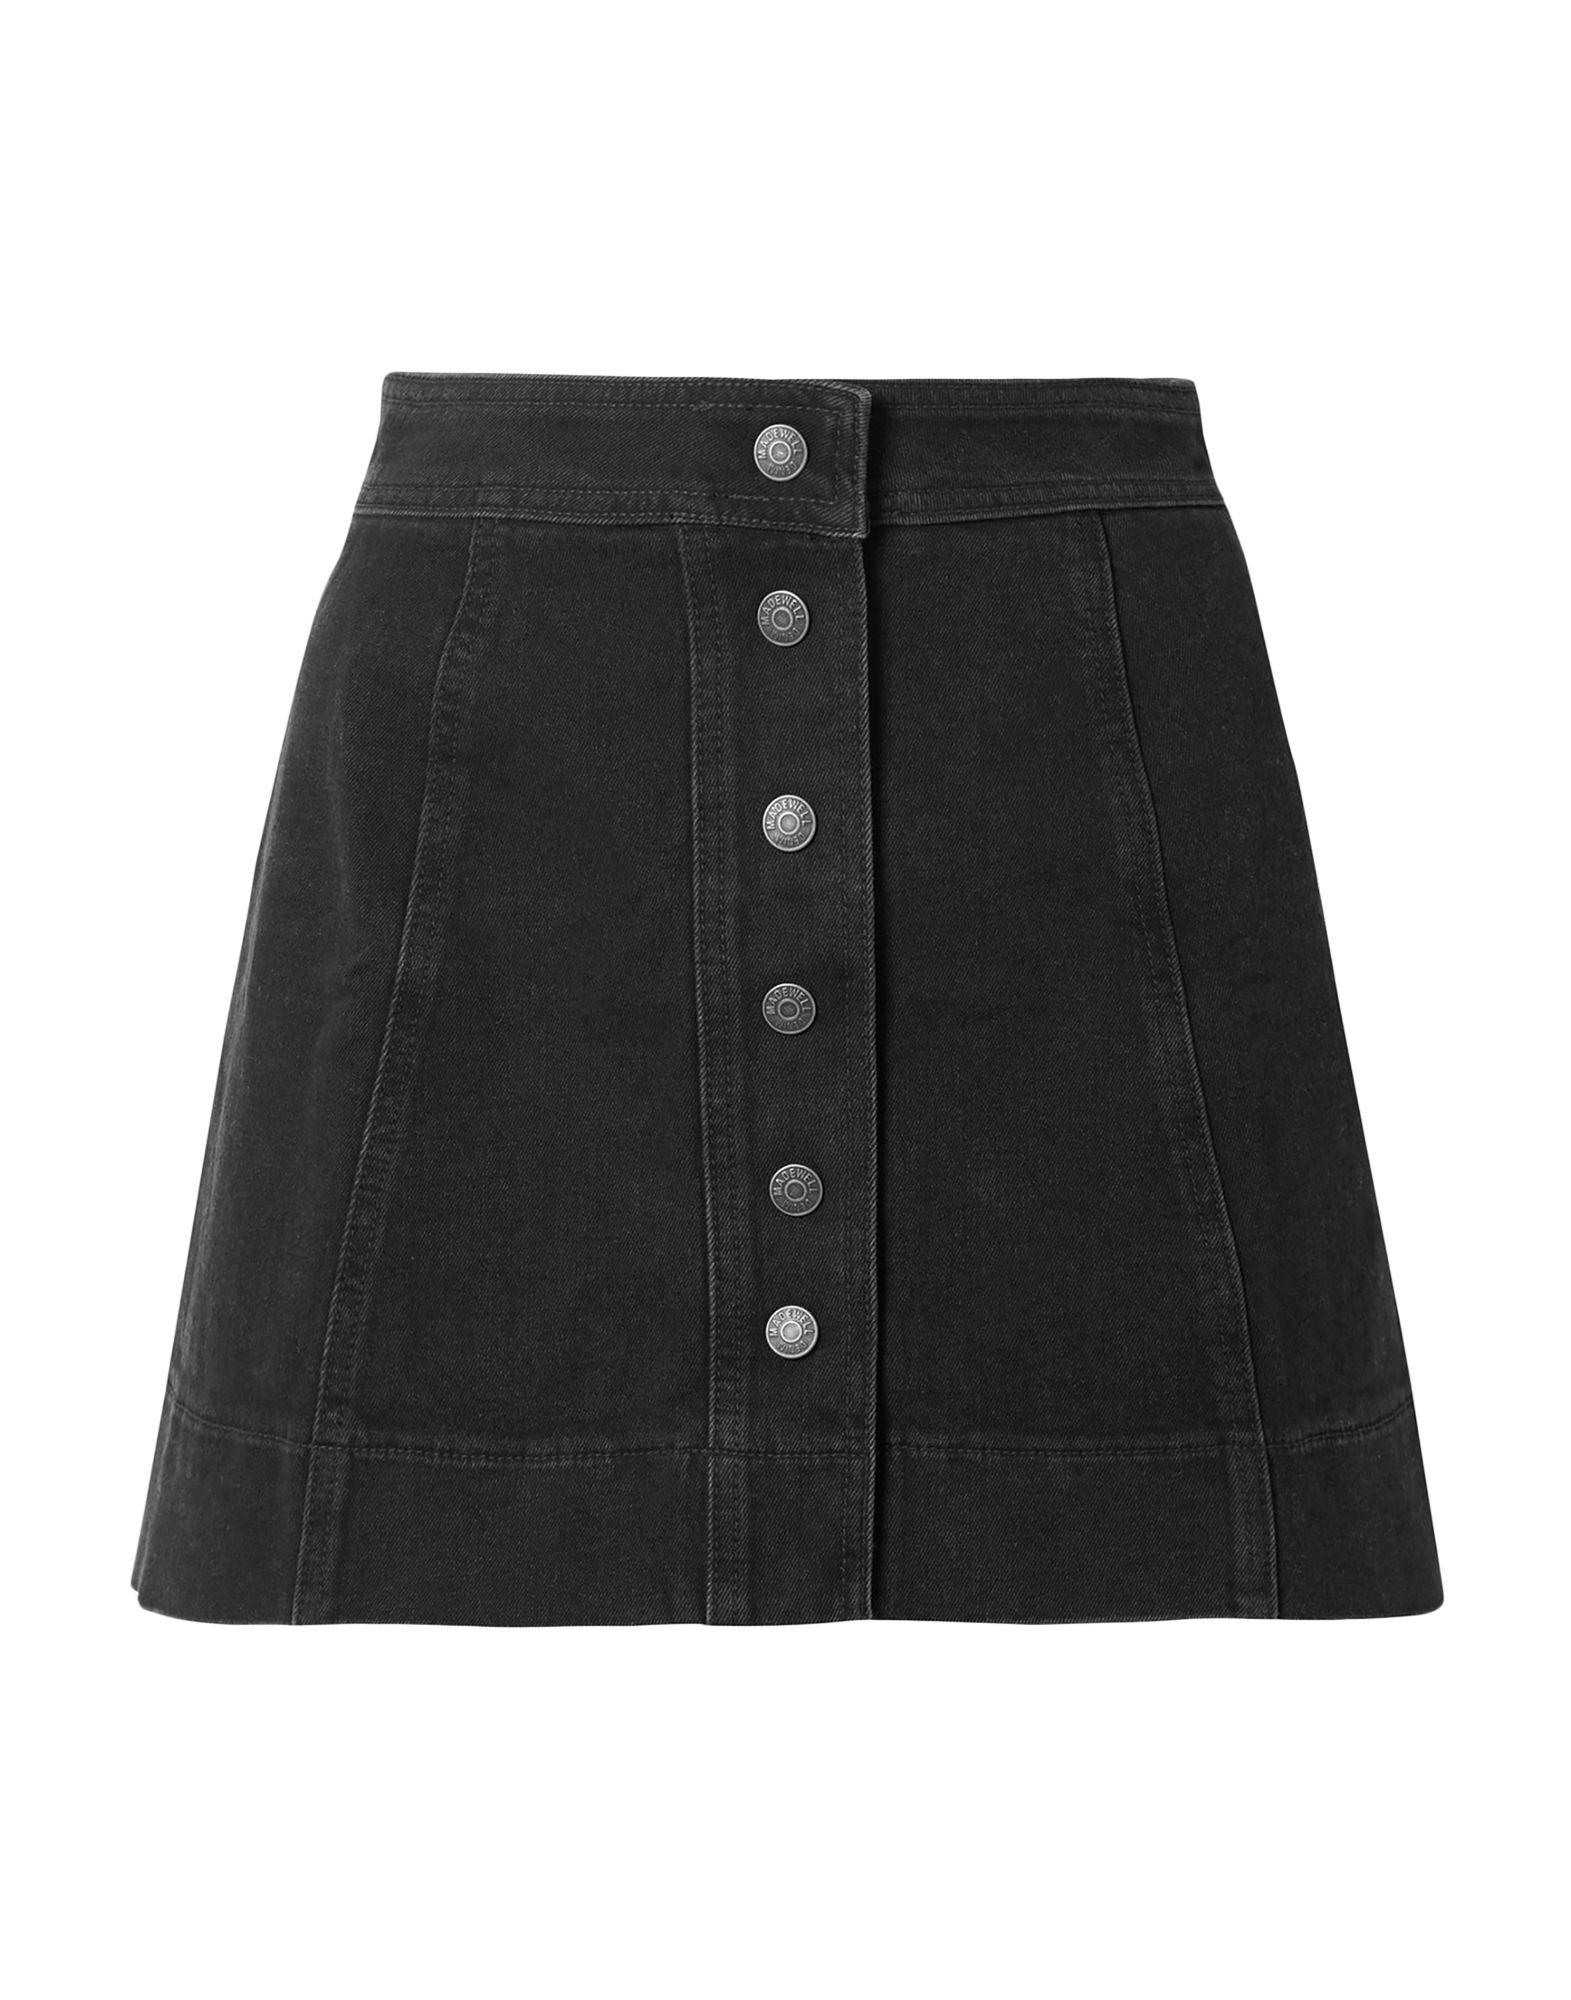 MADEWELL Denim skirts. denim, no appliqués, basic solid color, colored wash, front closure, snap buttons fastening, no pockets, stretch. 98% Cotton, 2% Elastane